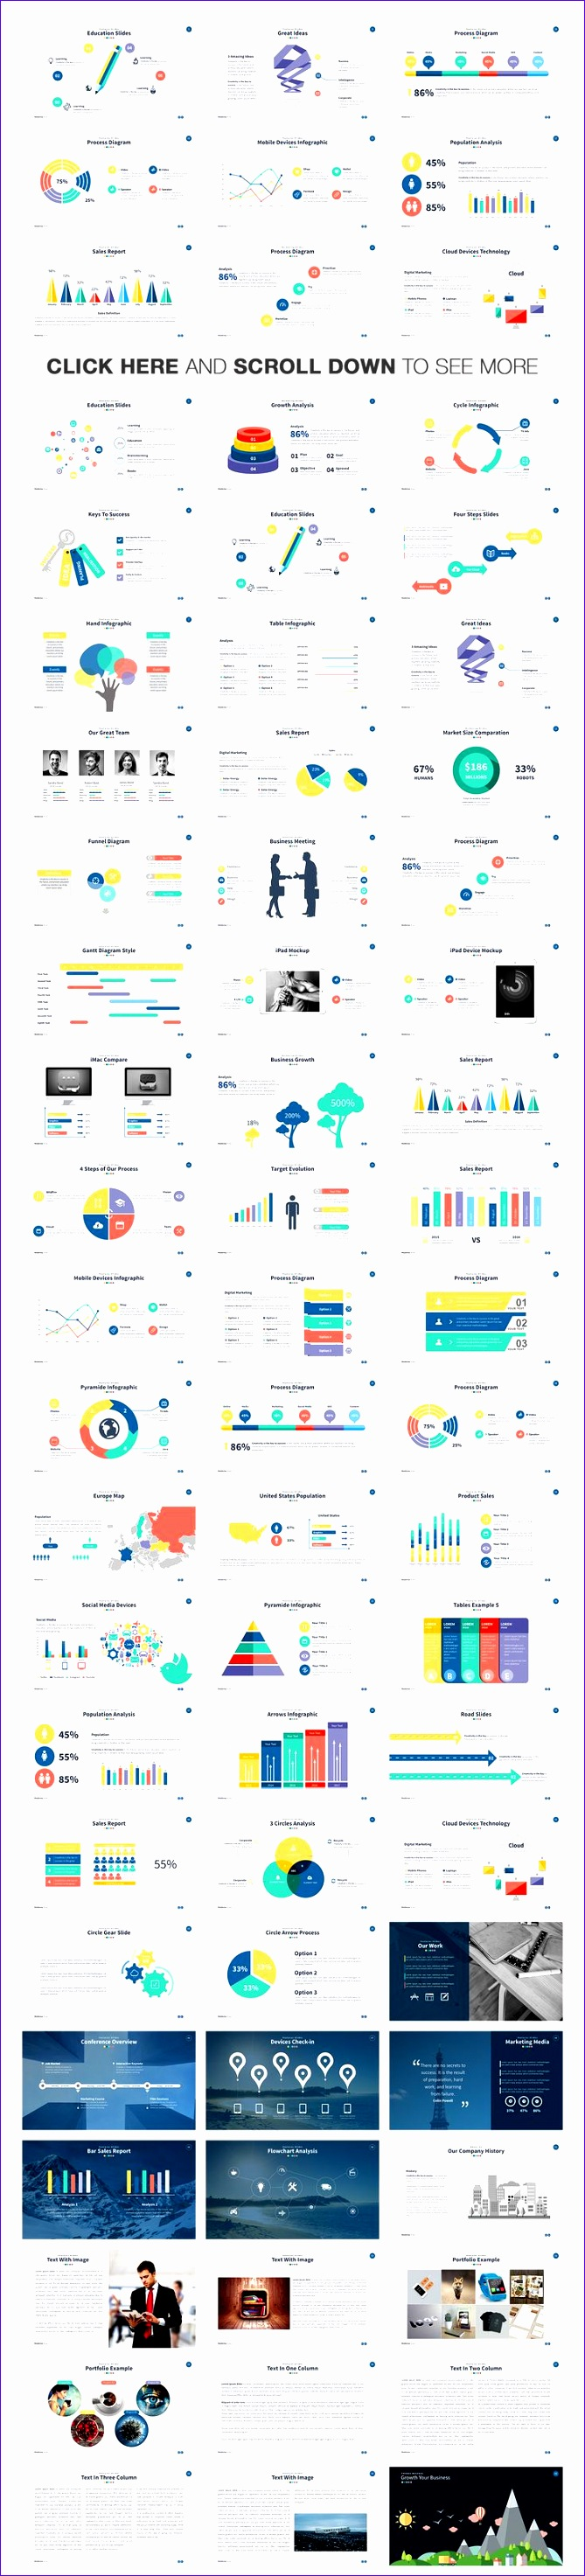 a4db fbb82c5c5017e7 powerpoint design business infographics